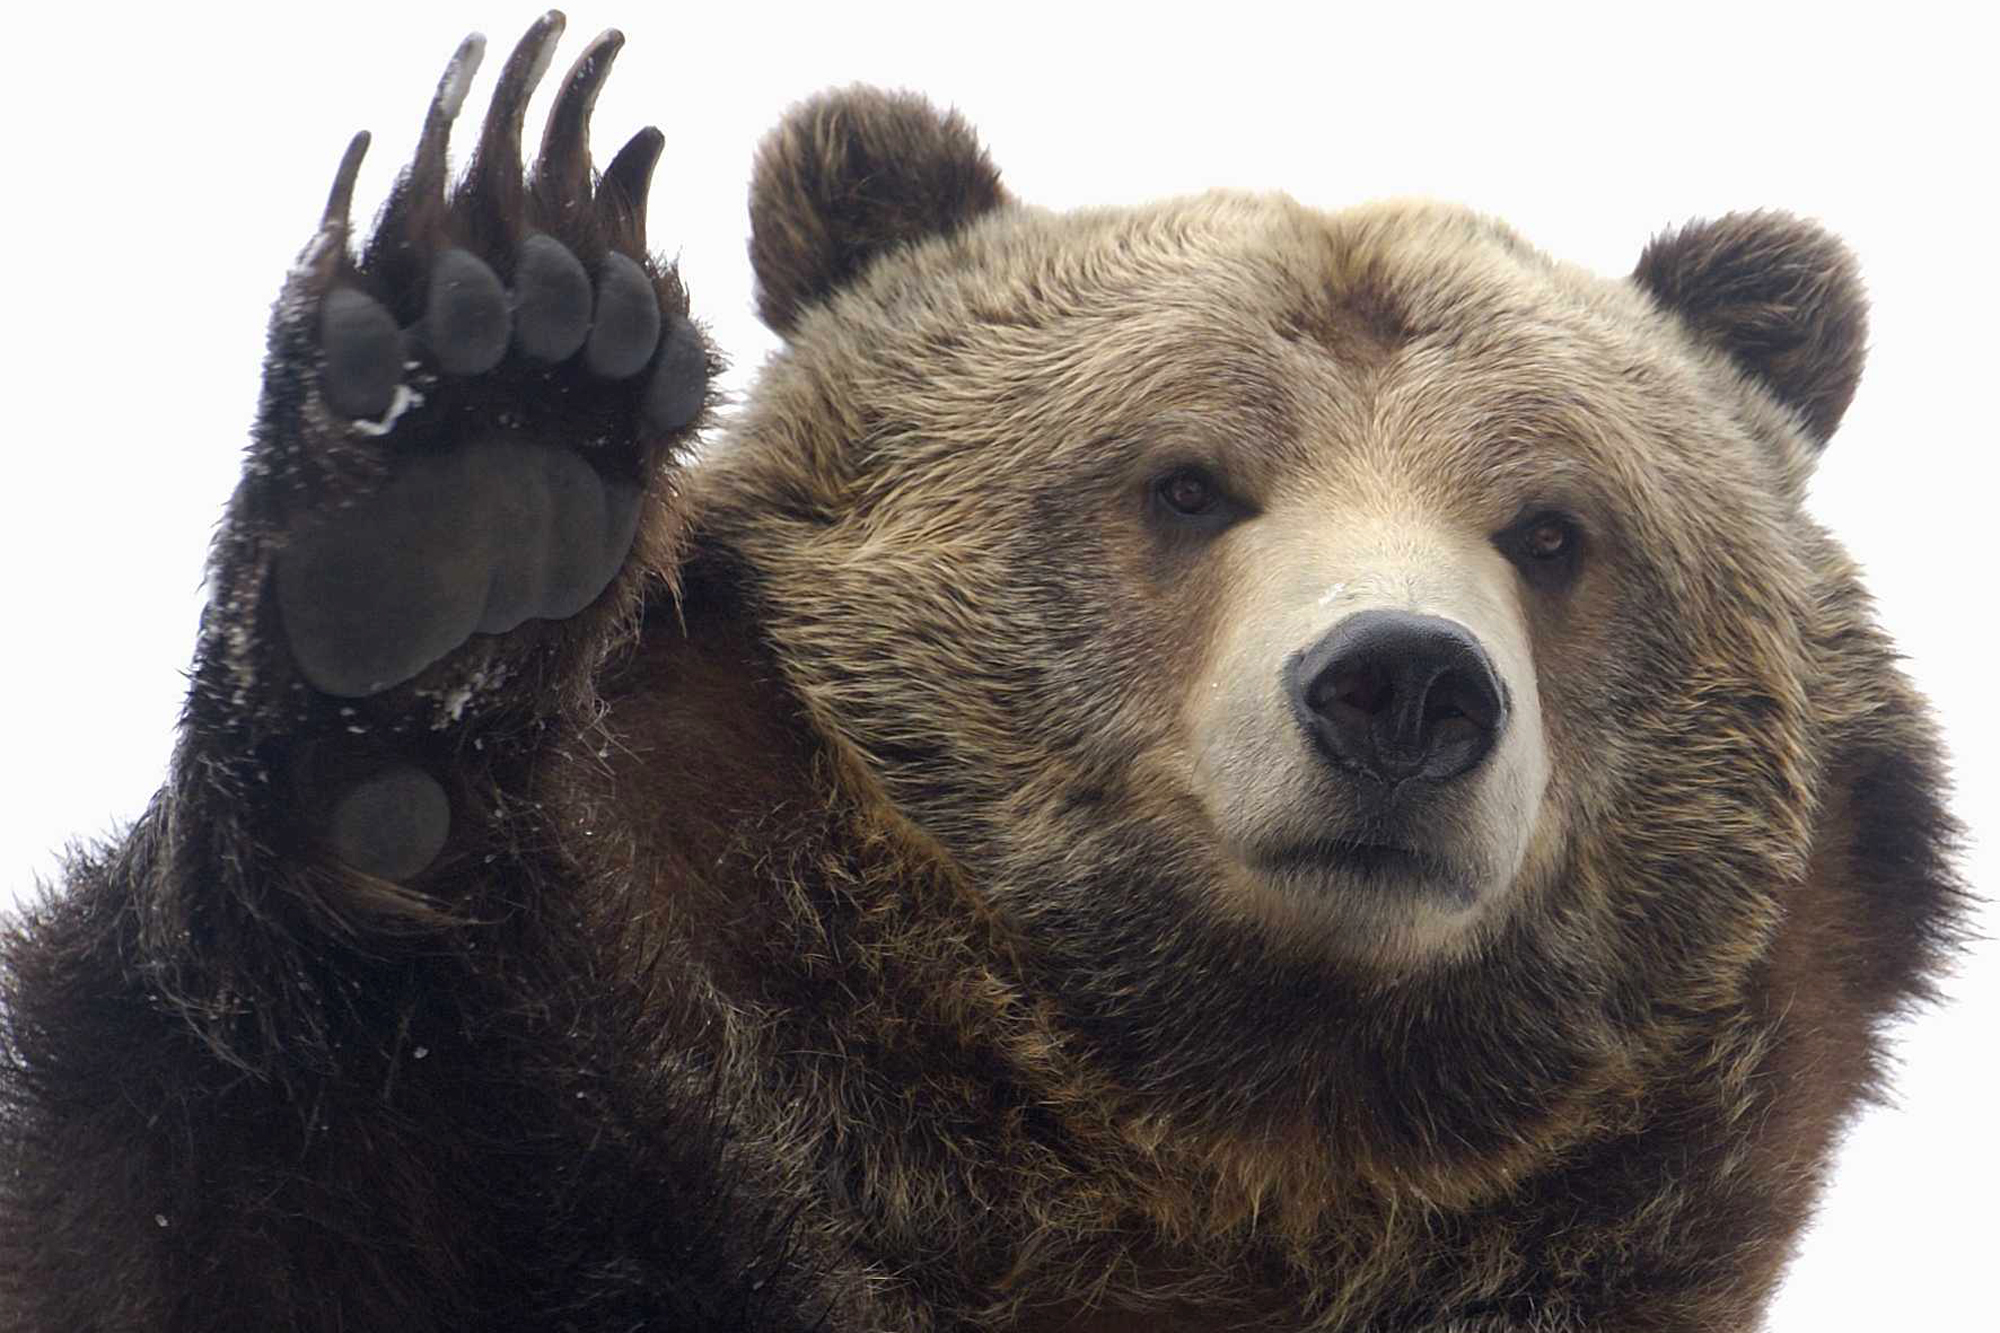 Bear Gives High Five